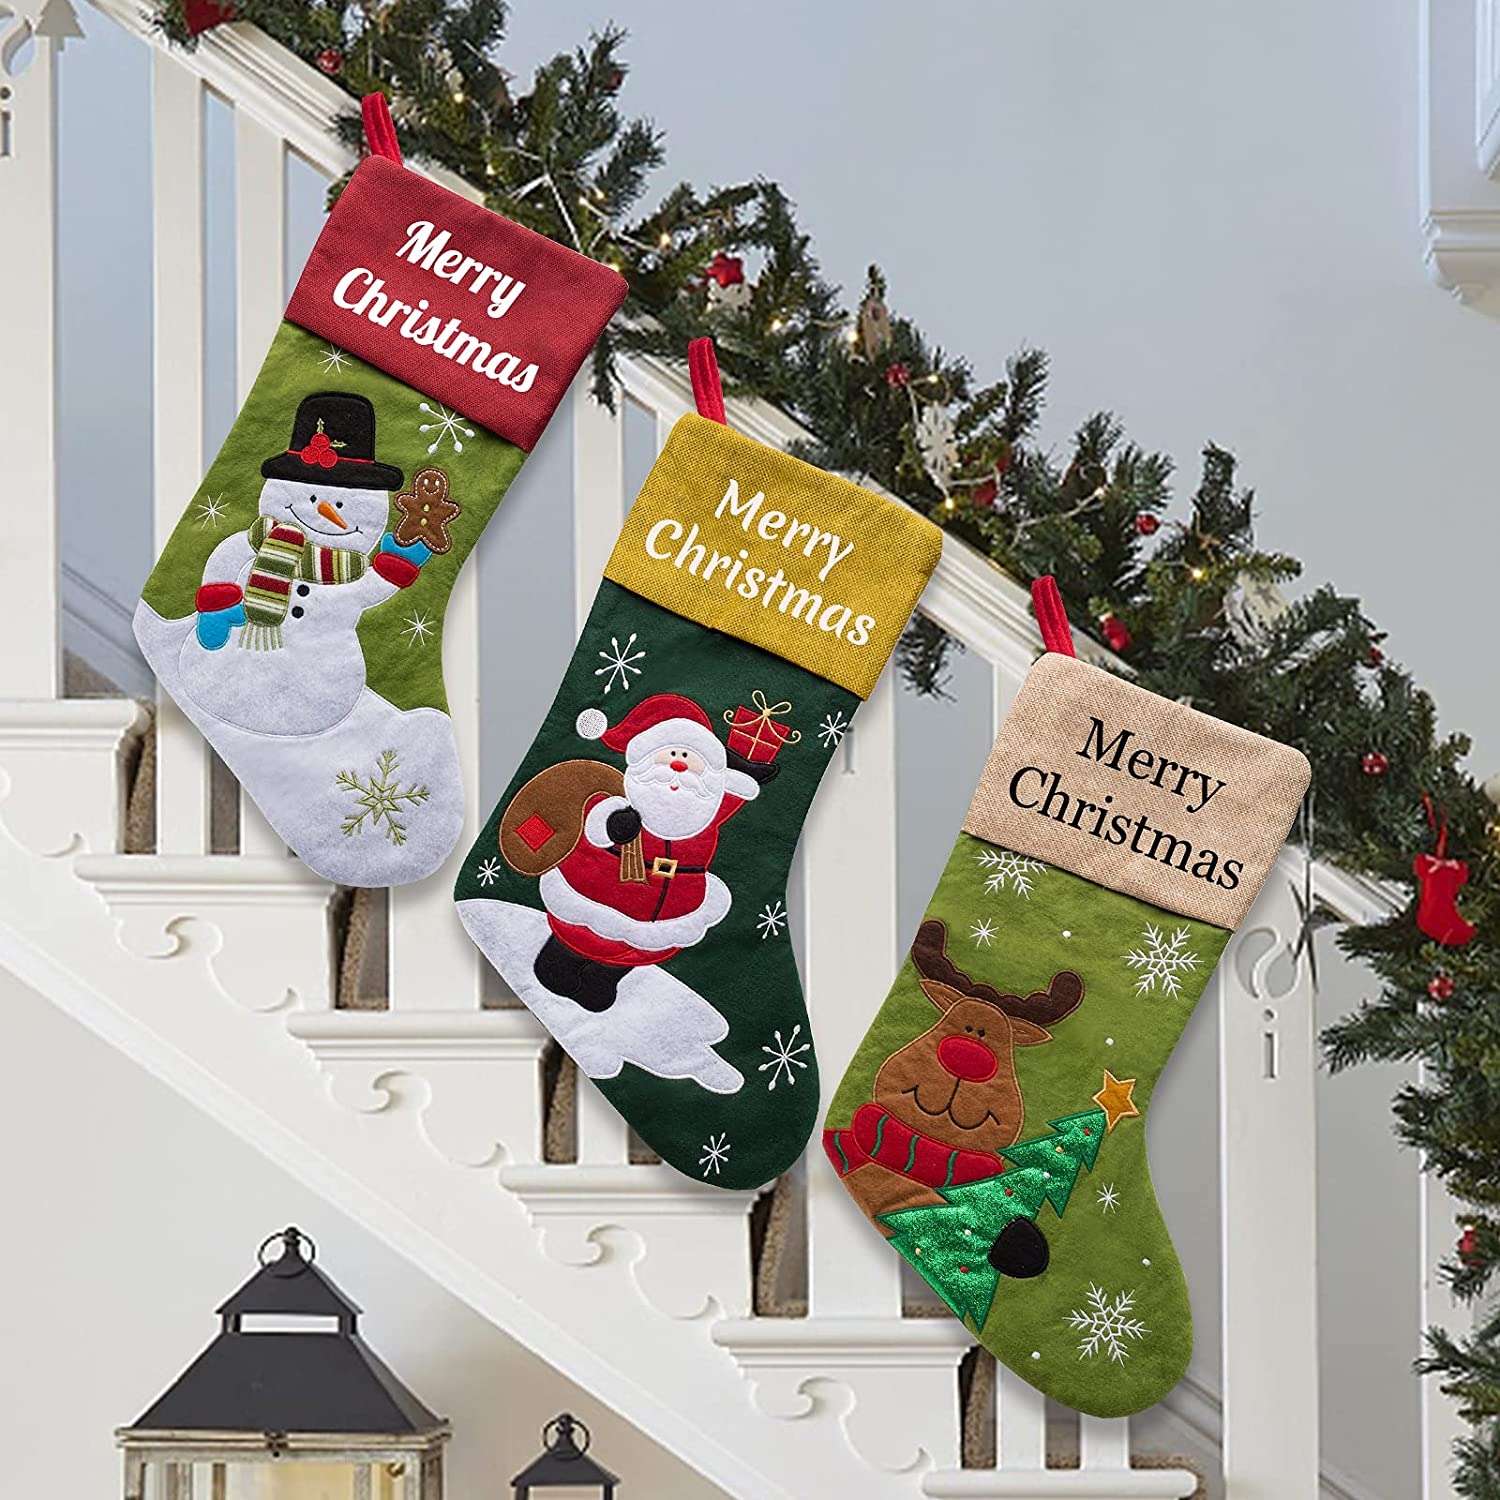 Qingxily Christmas Stockings Personalized Name Set 2 4 of 3 Ranking TOP10 Same day shipping 5 1